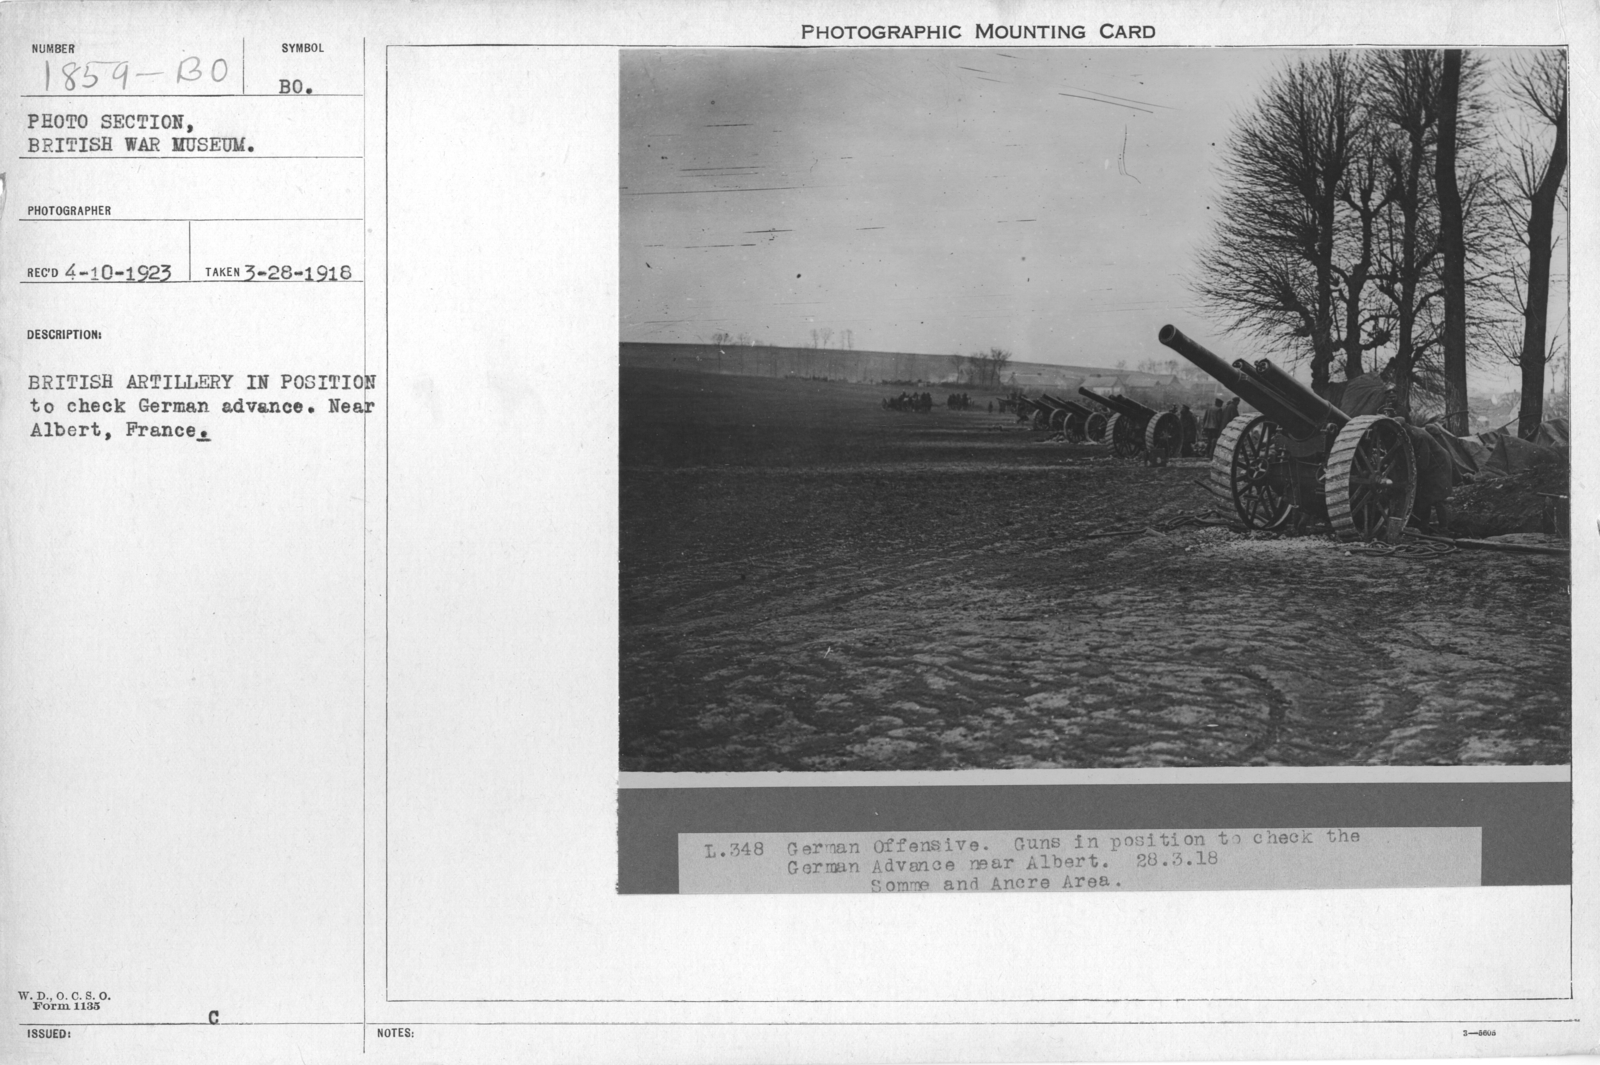 British artillery in position to check German advance. Near Albert, France